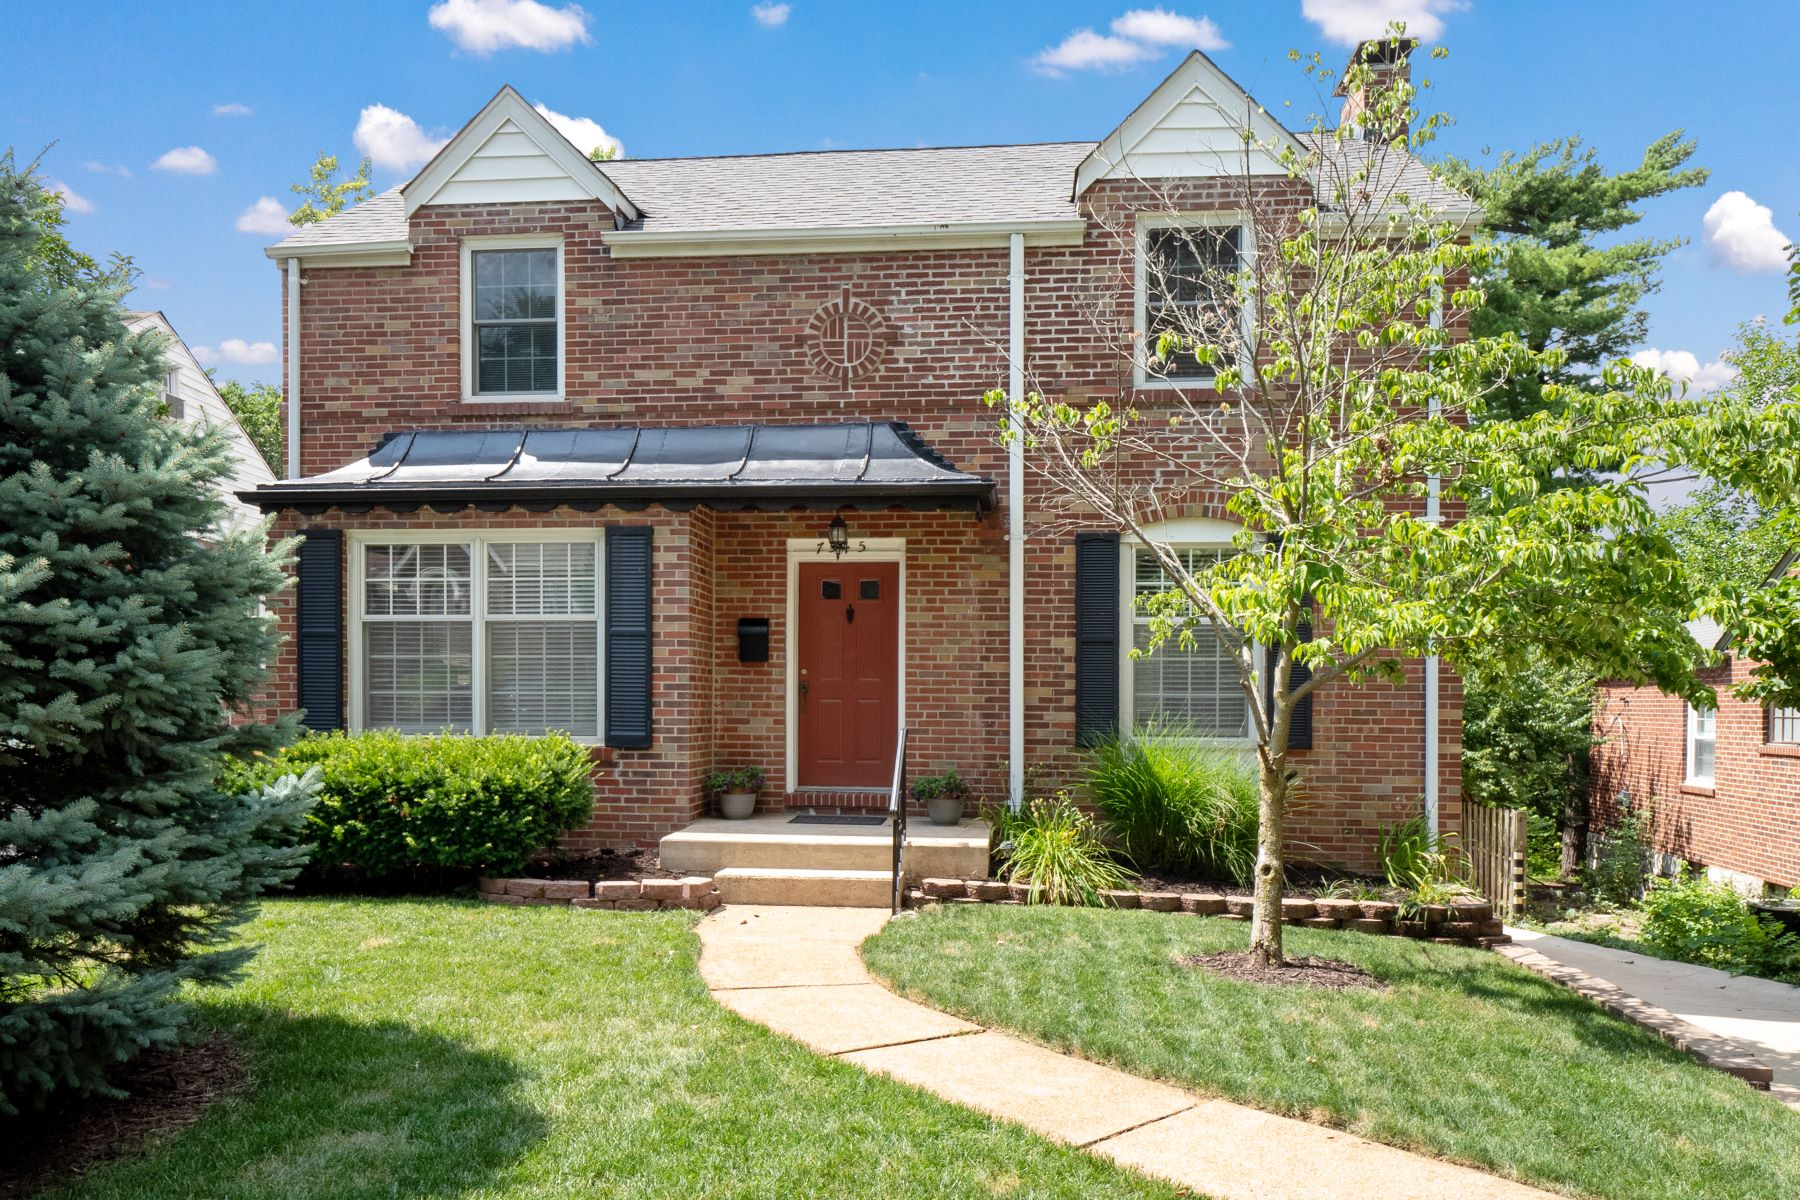 Single Family Homes for Sale at Richmond Heights Most Charming Home! 7545 Hiawatha Avenue Richmond Heights, Missouri 63117 United States